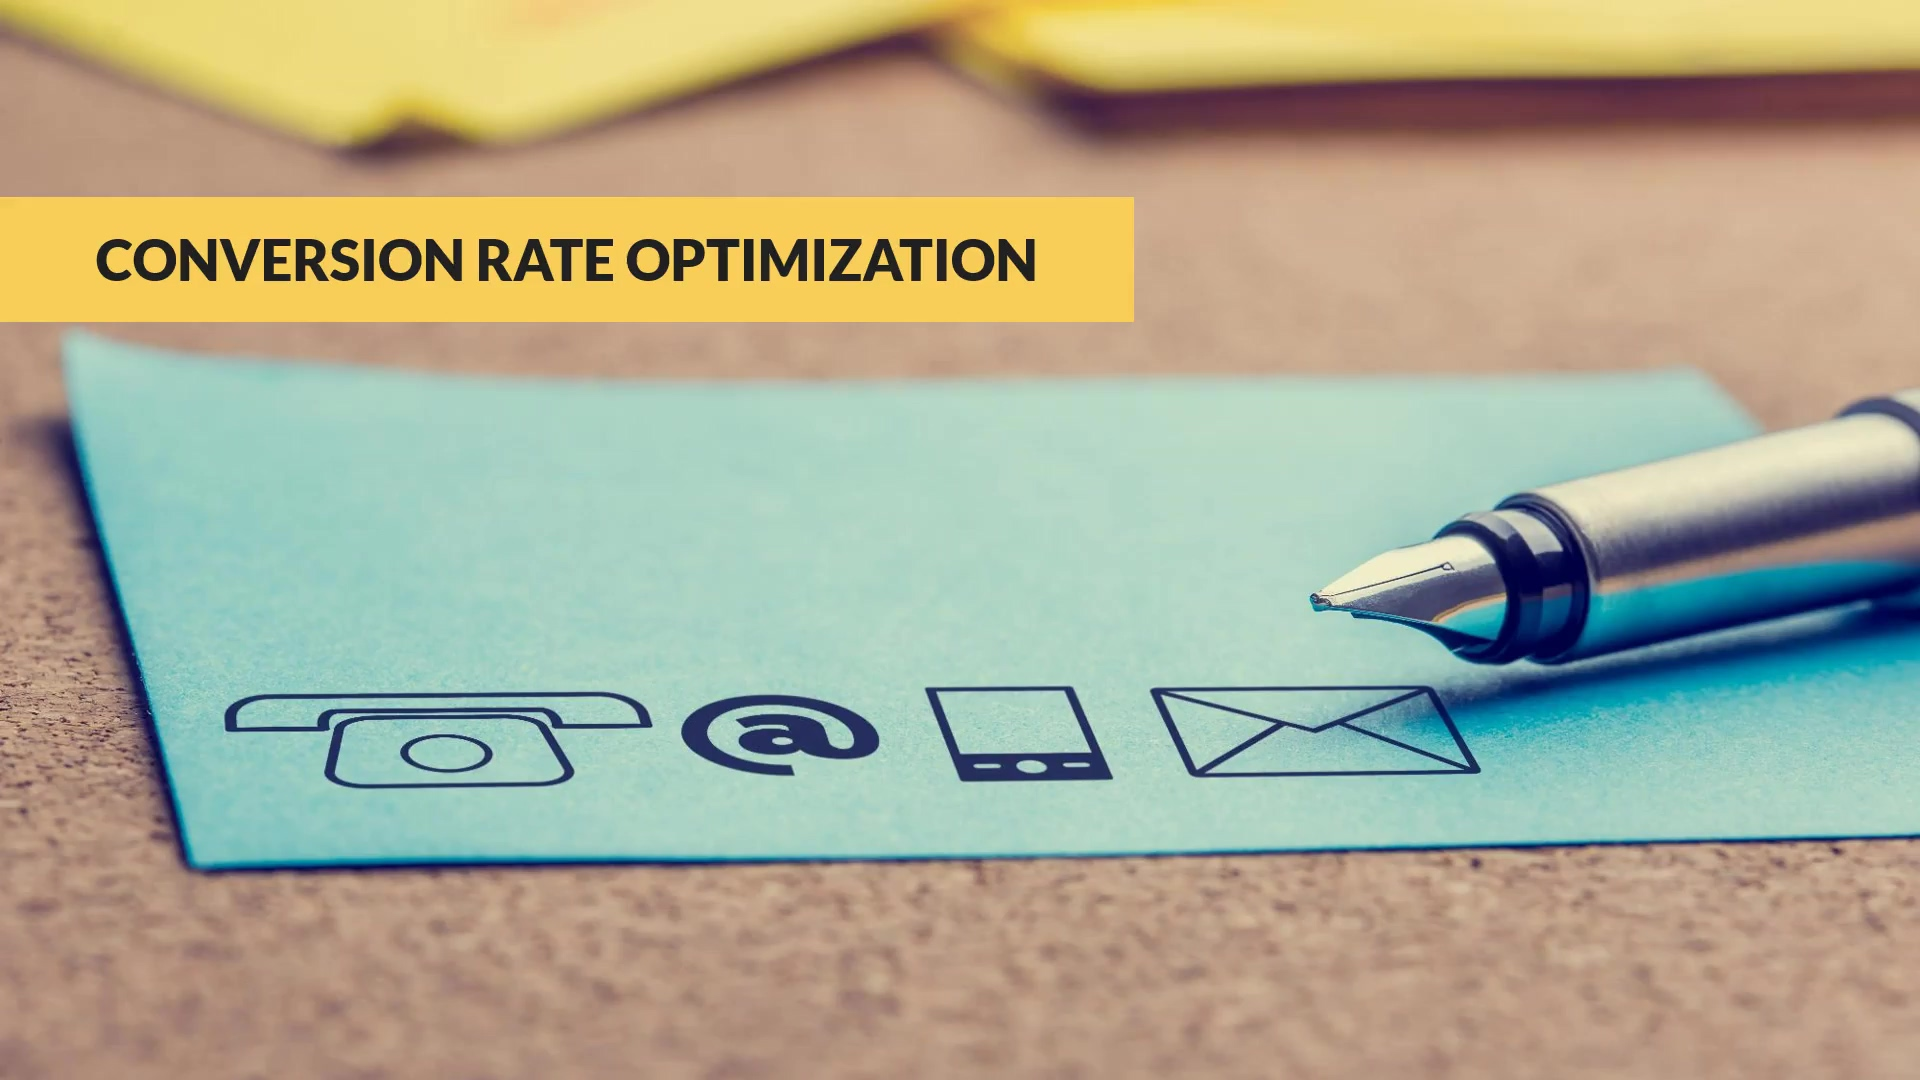 Conversion Rate Optimization - Marketing Peer Group